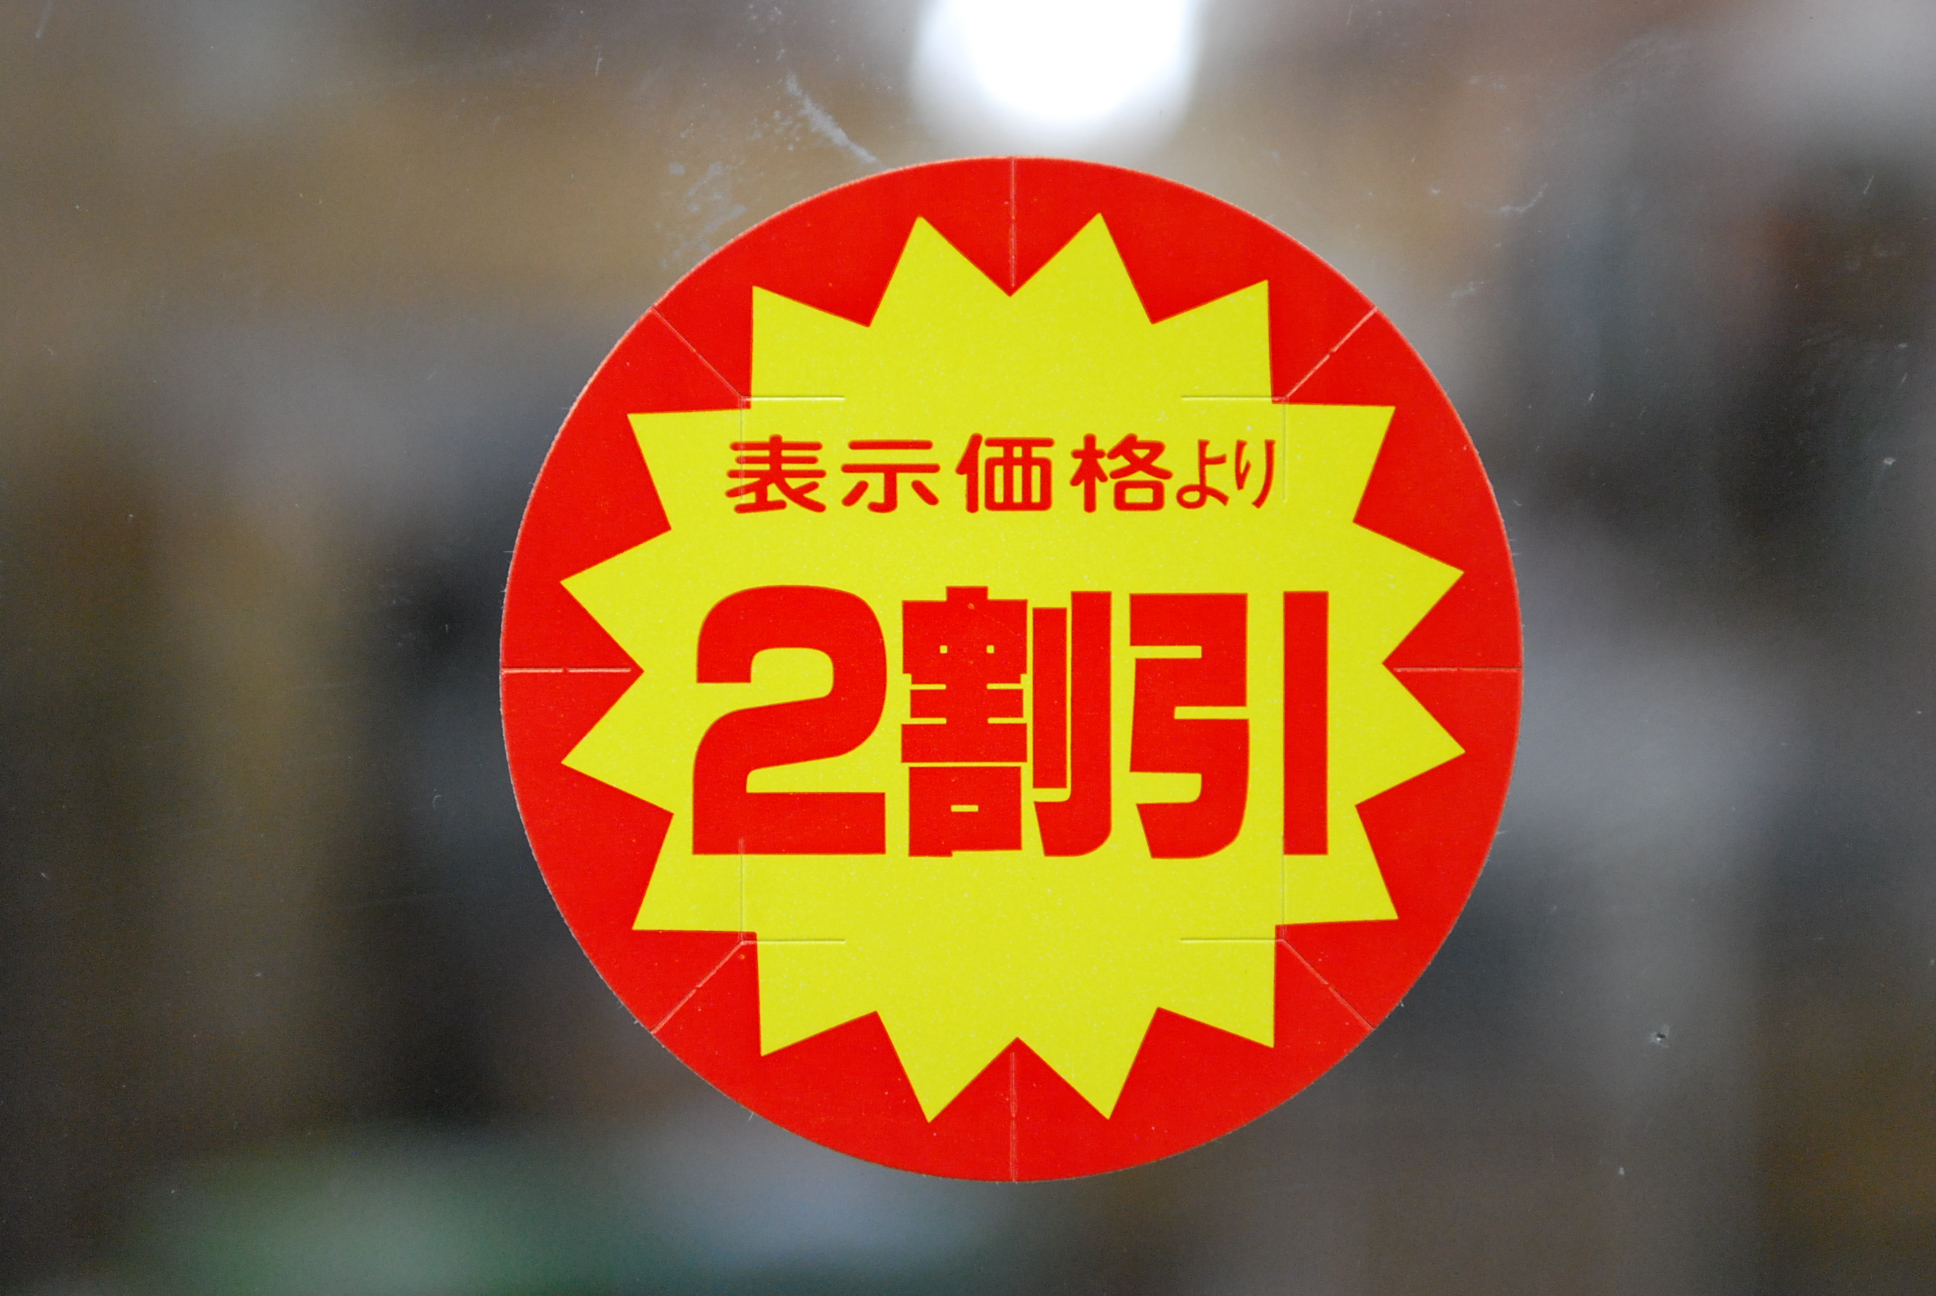 a japanese supermarket time sale sticker